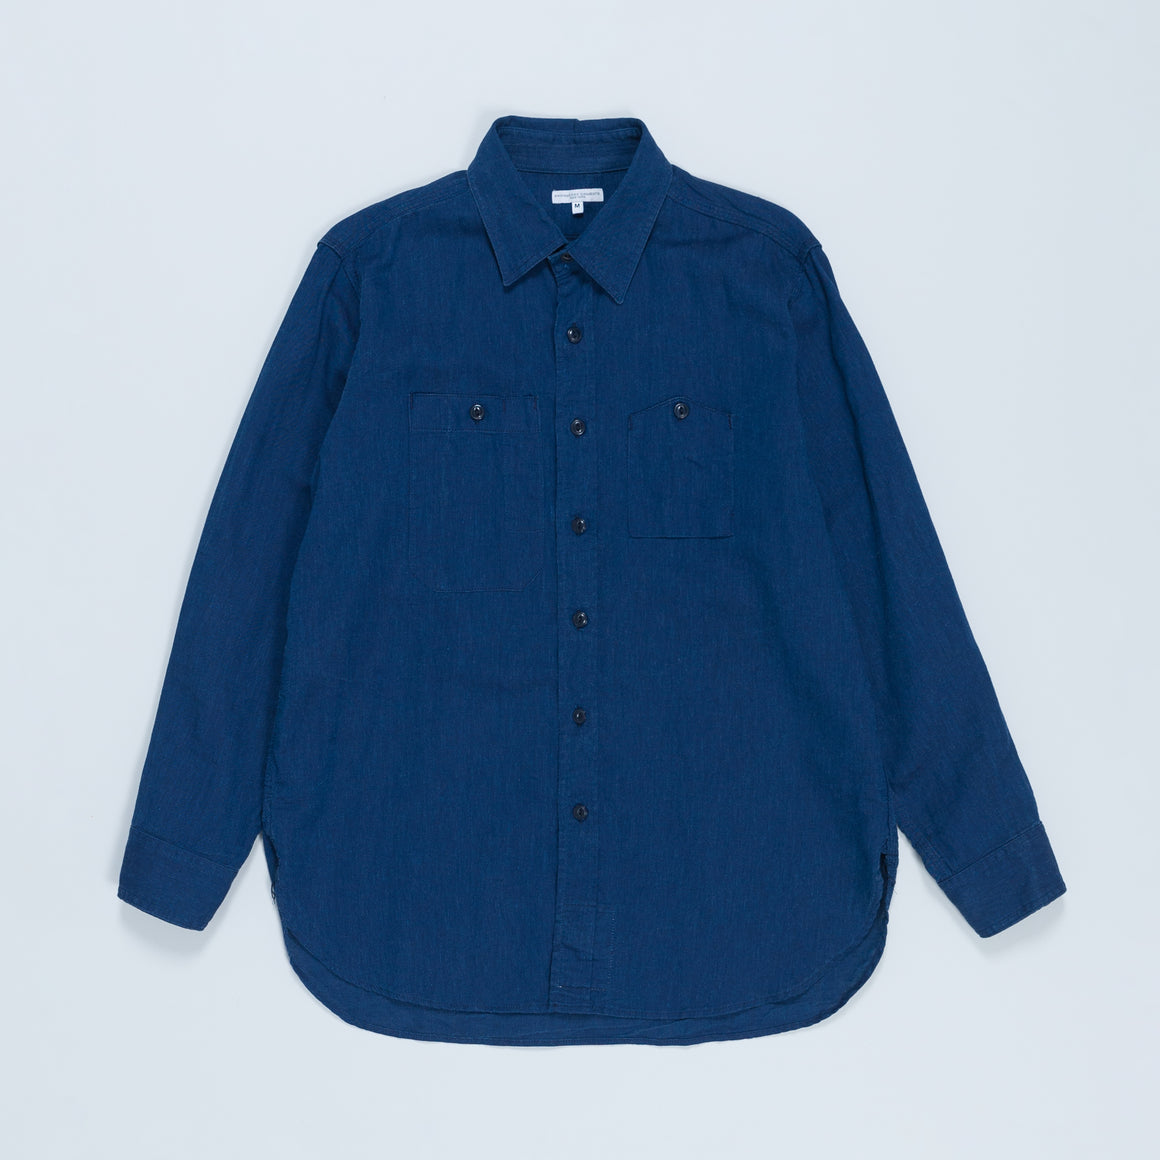 Work Shirt - Navy CL Solid - Up There